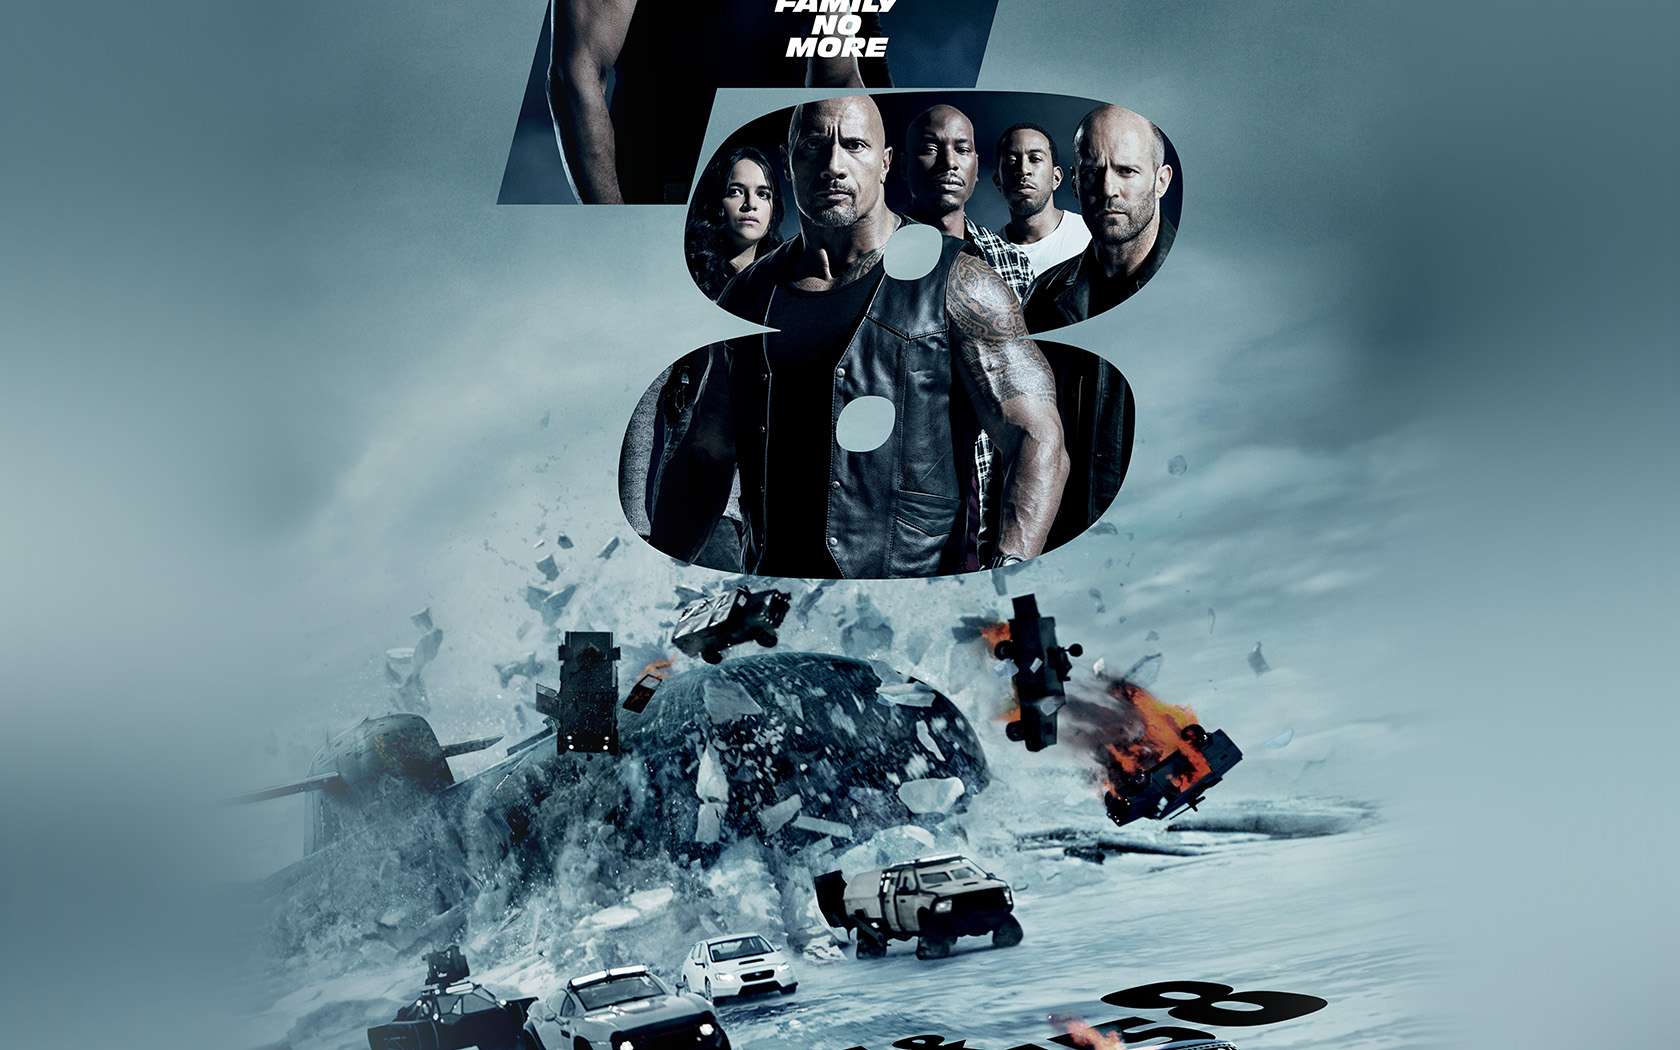 Ay59 fast and furious 8 poster film illustration art wallpaper - Furious 8 wallpaper ...